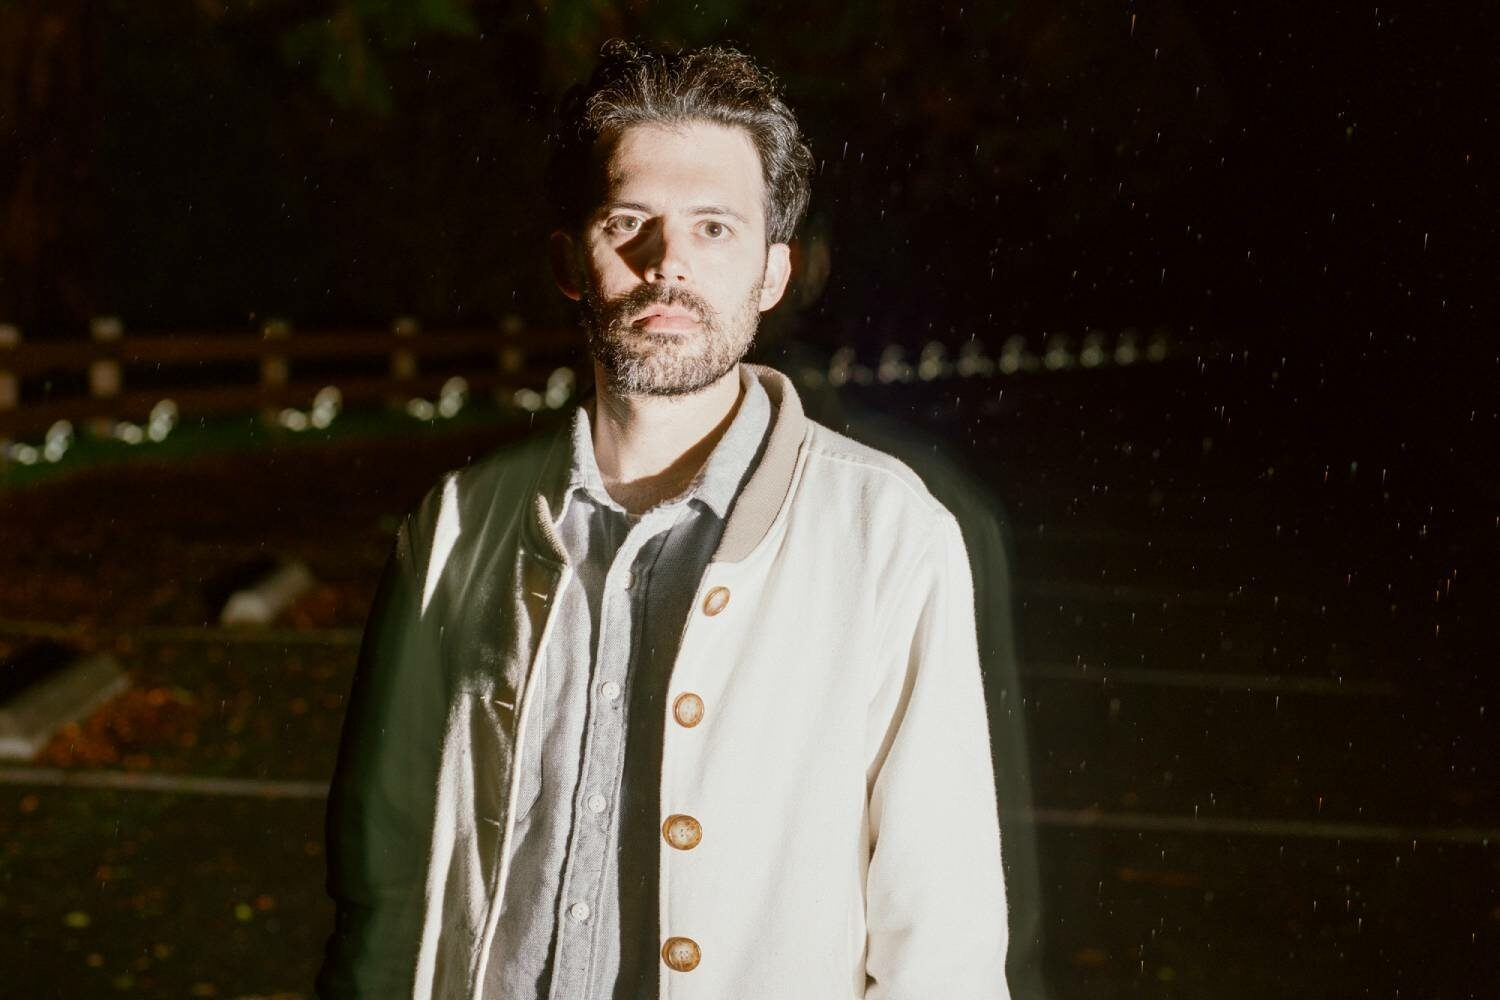 Tune-Yards' Nate Brenner shares new single via solo project Naytronix